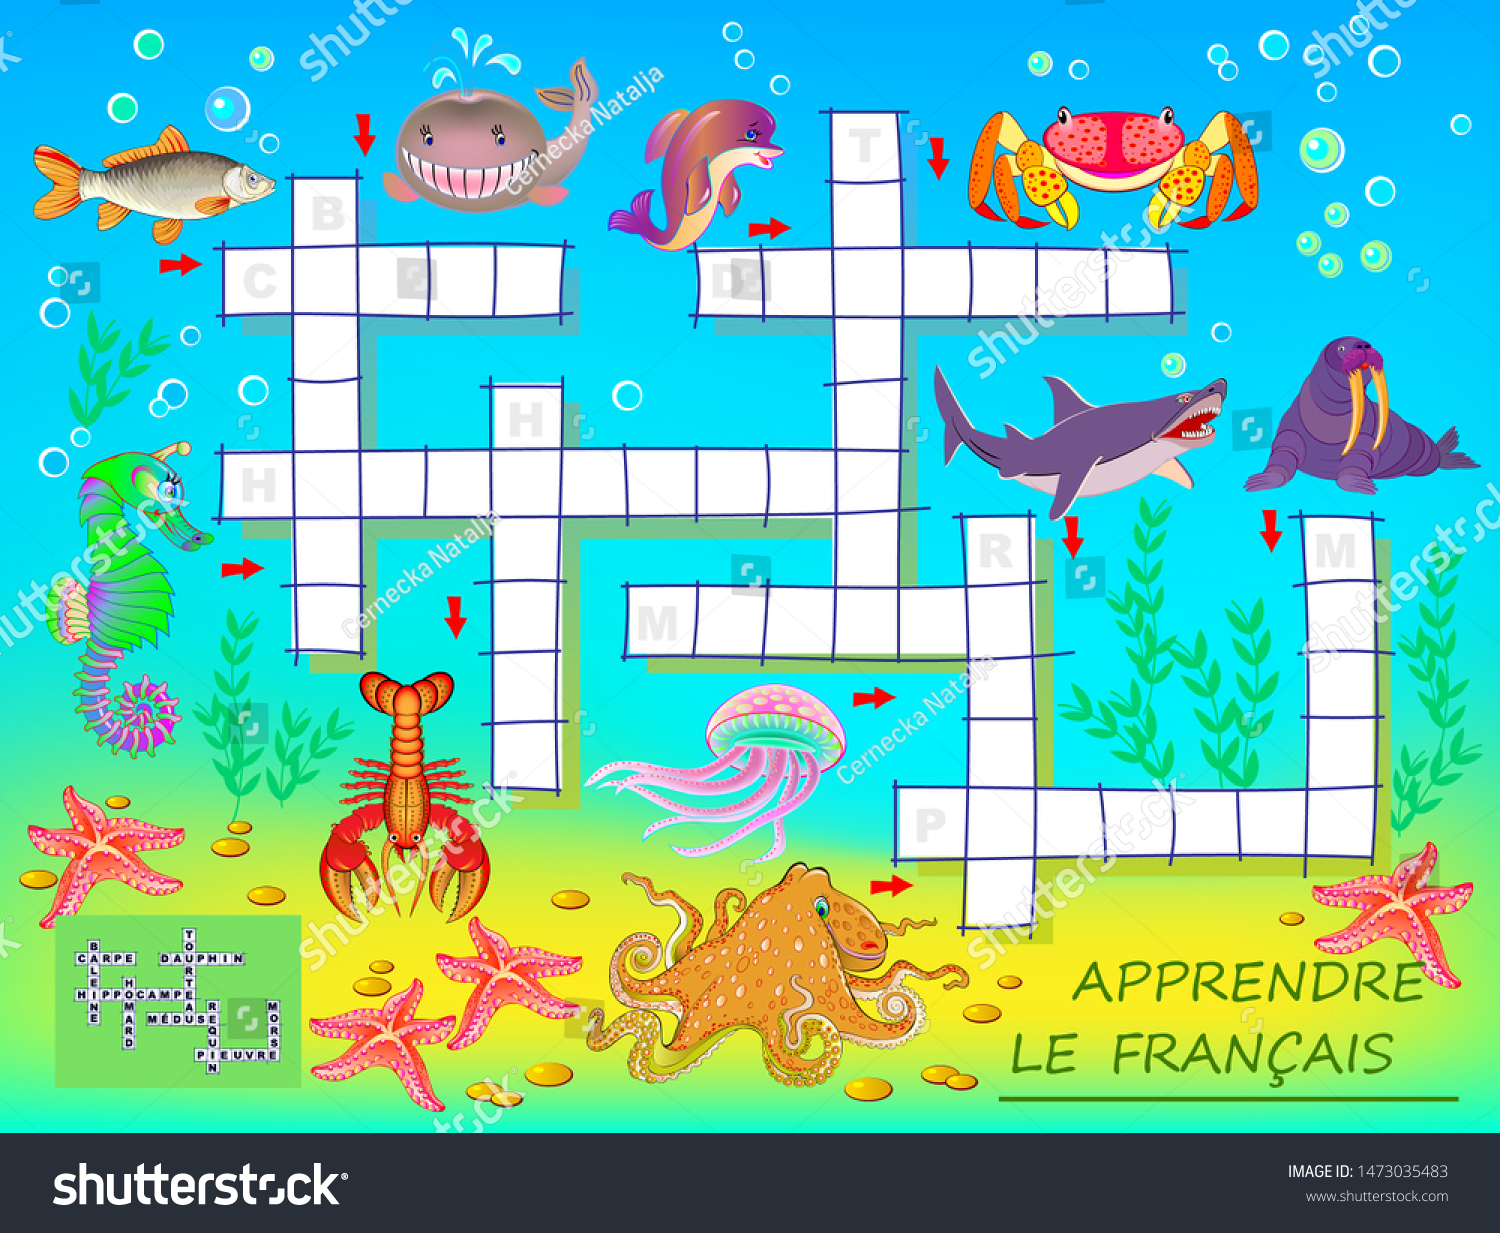 French crossword puzzles for kids with pictures to color